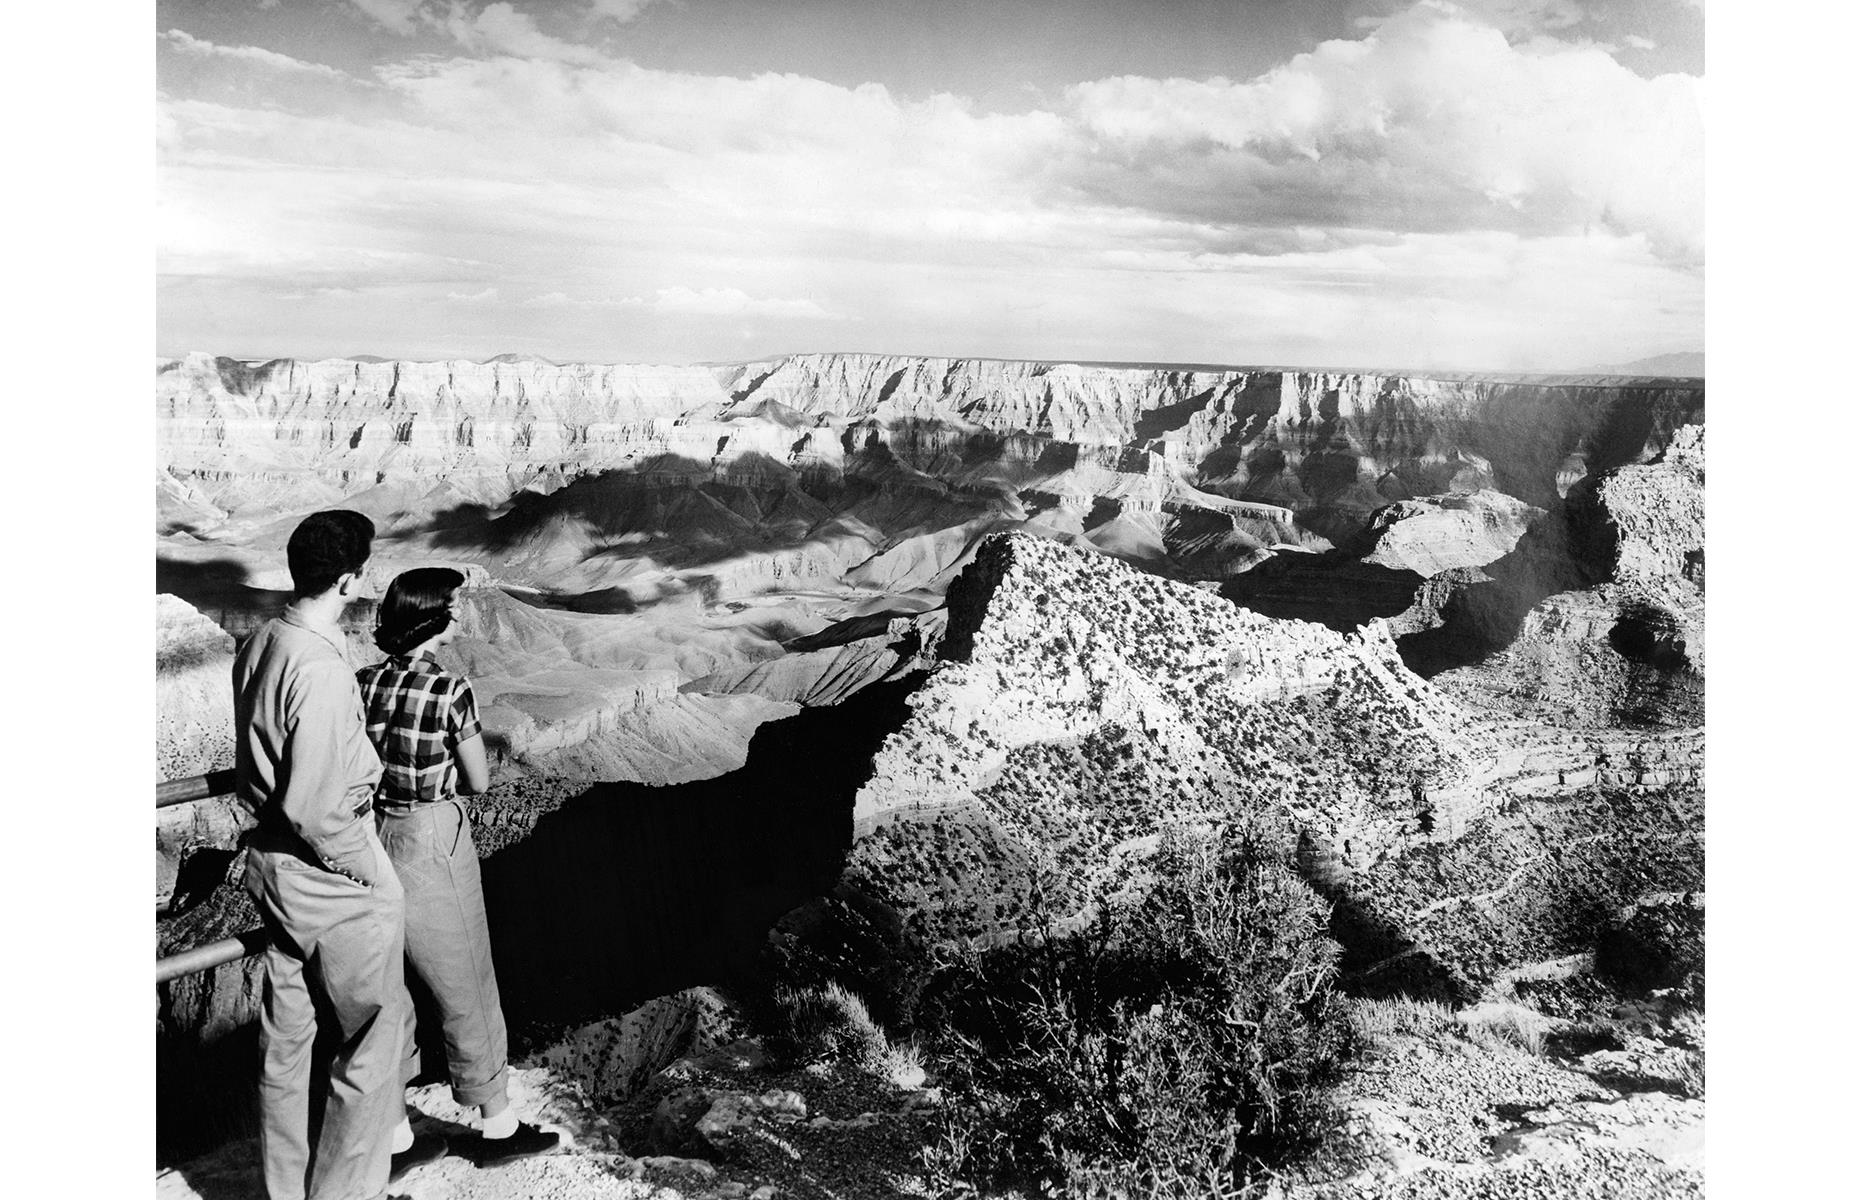 Slide 9 of 47: Today the canyon is peppered with scenic viewpoints, from the famous glass Skywalk at the West Rim to Mather Point in the south. Here a couple in the 1940s stand at a rugged observation point and drink in the otherworldly landscape.